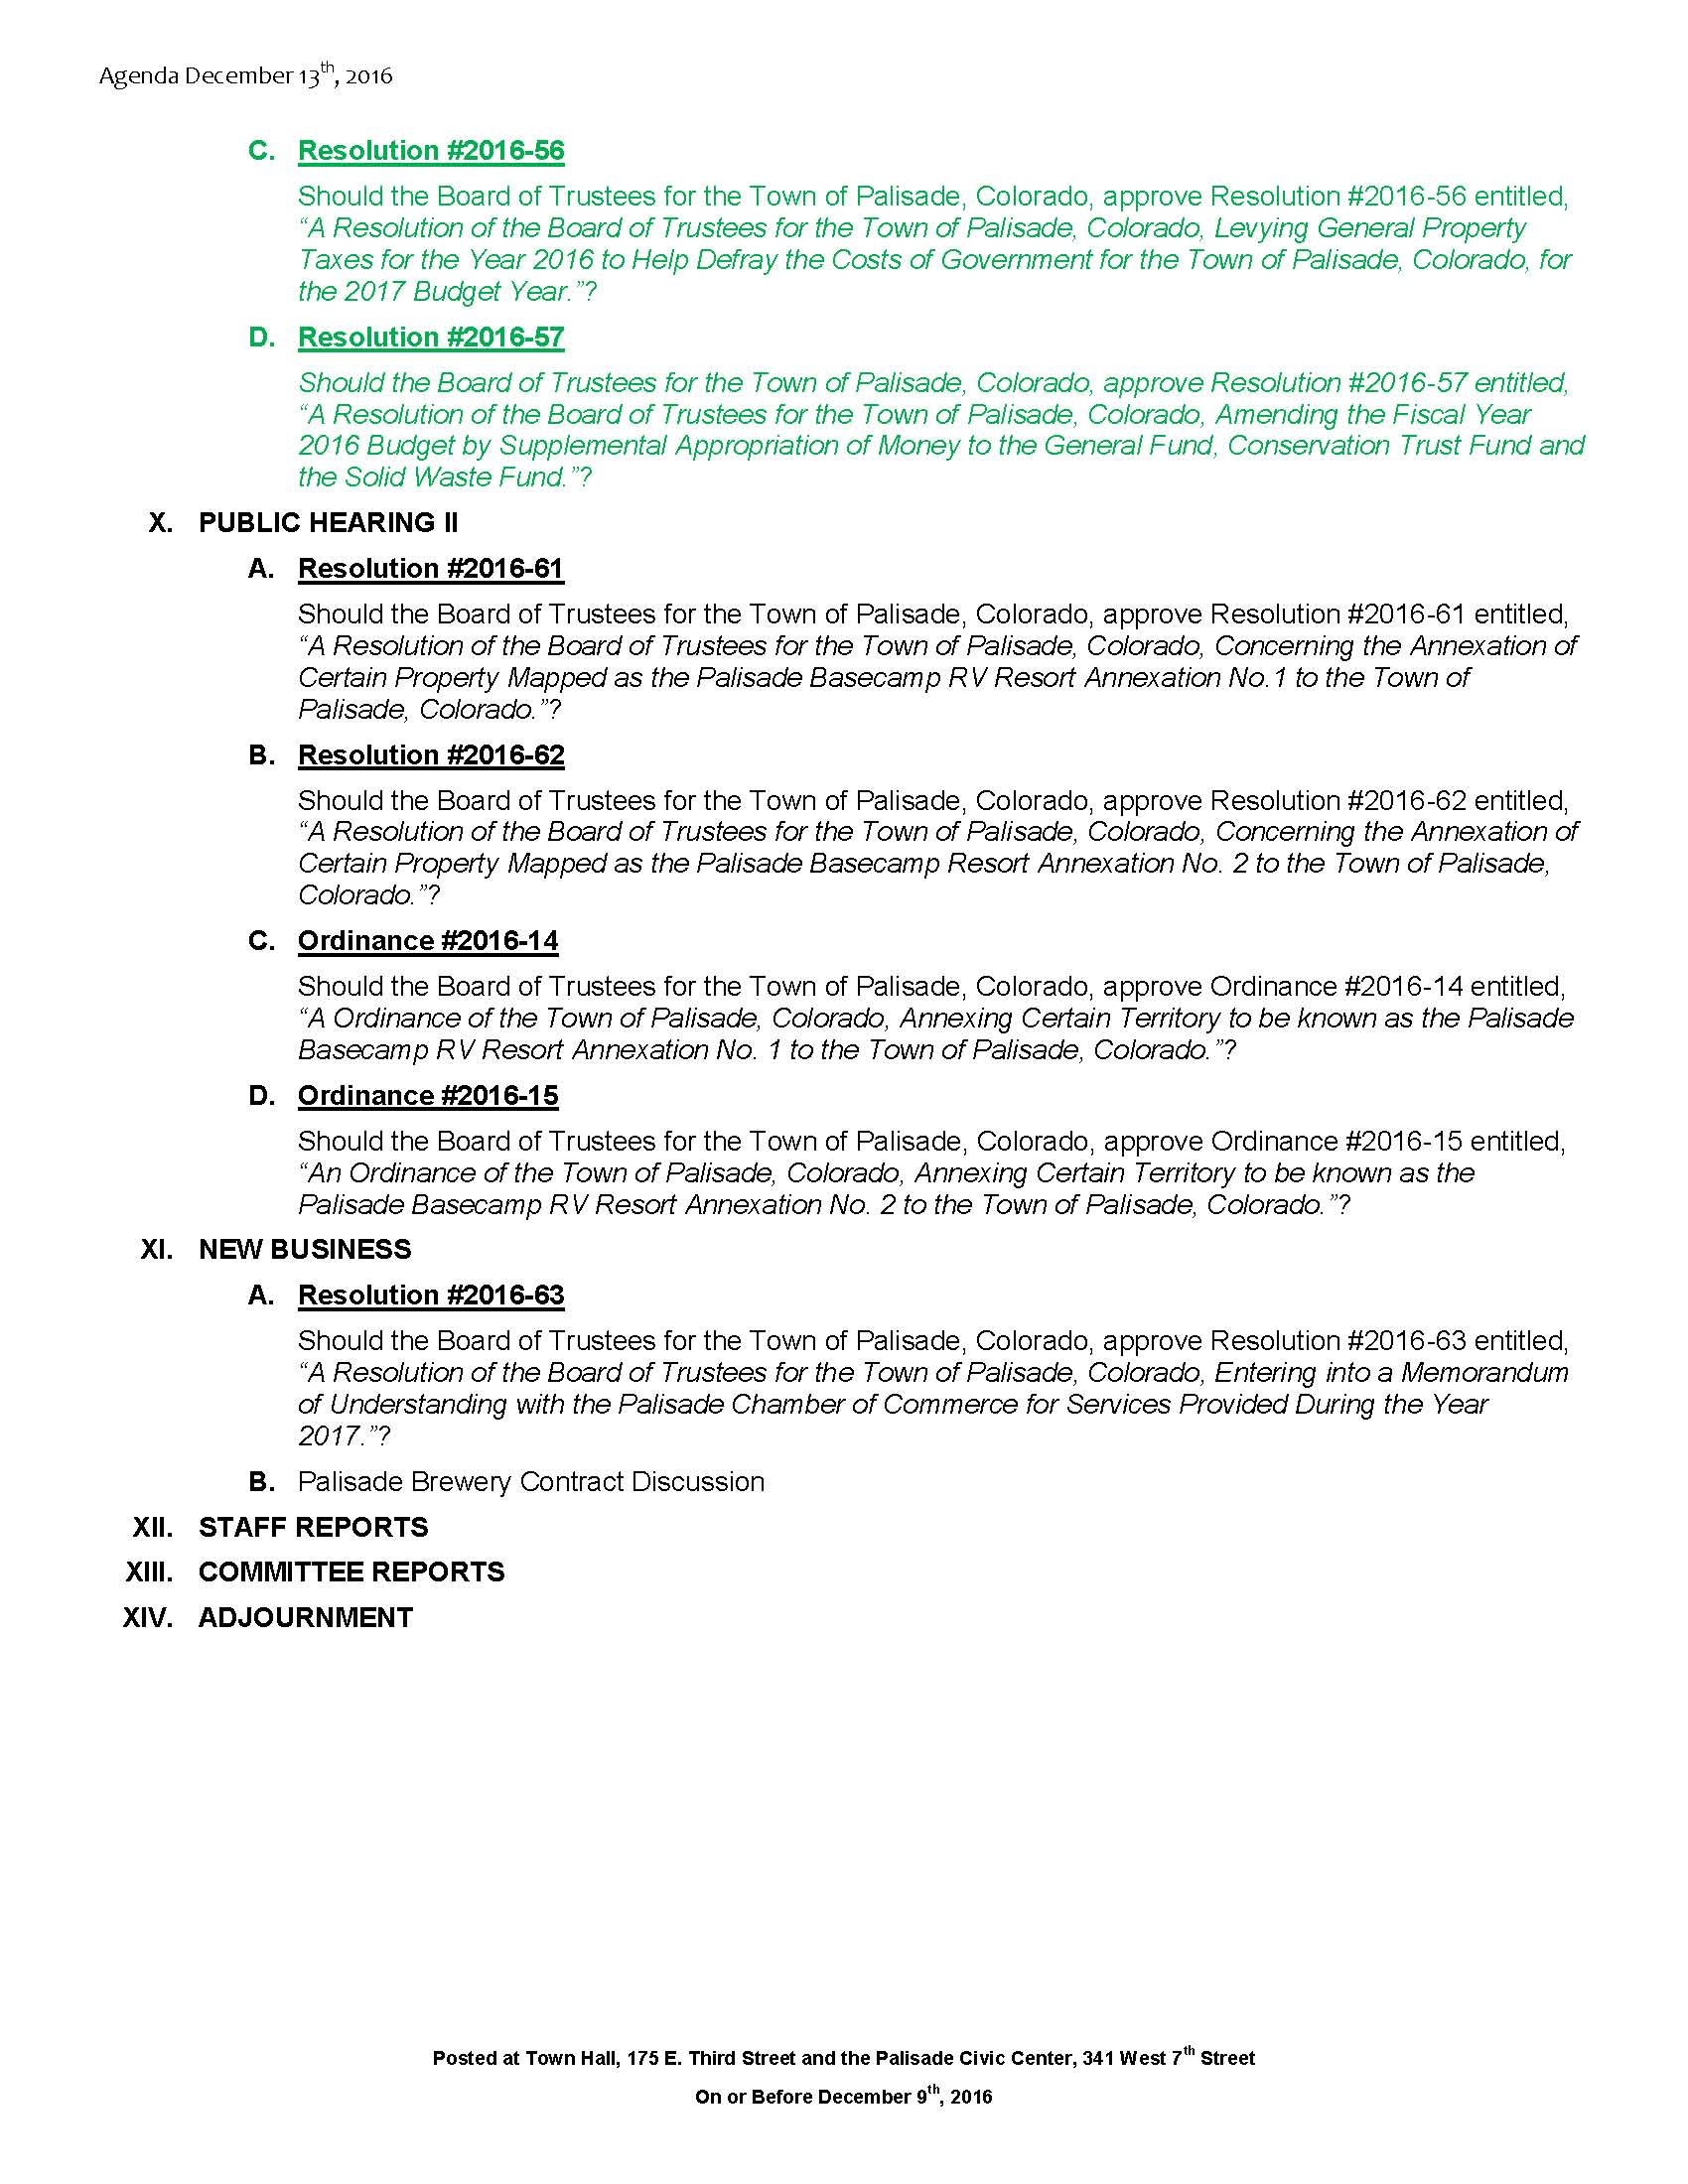 December 13th 2016 Board Meeting Agenda Page 2